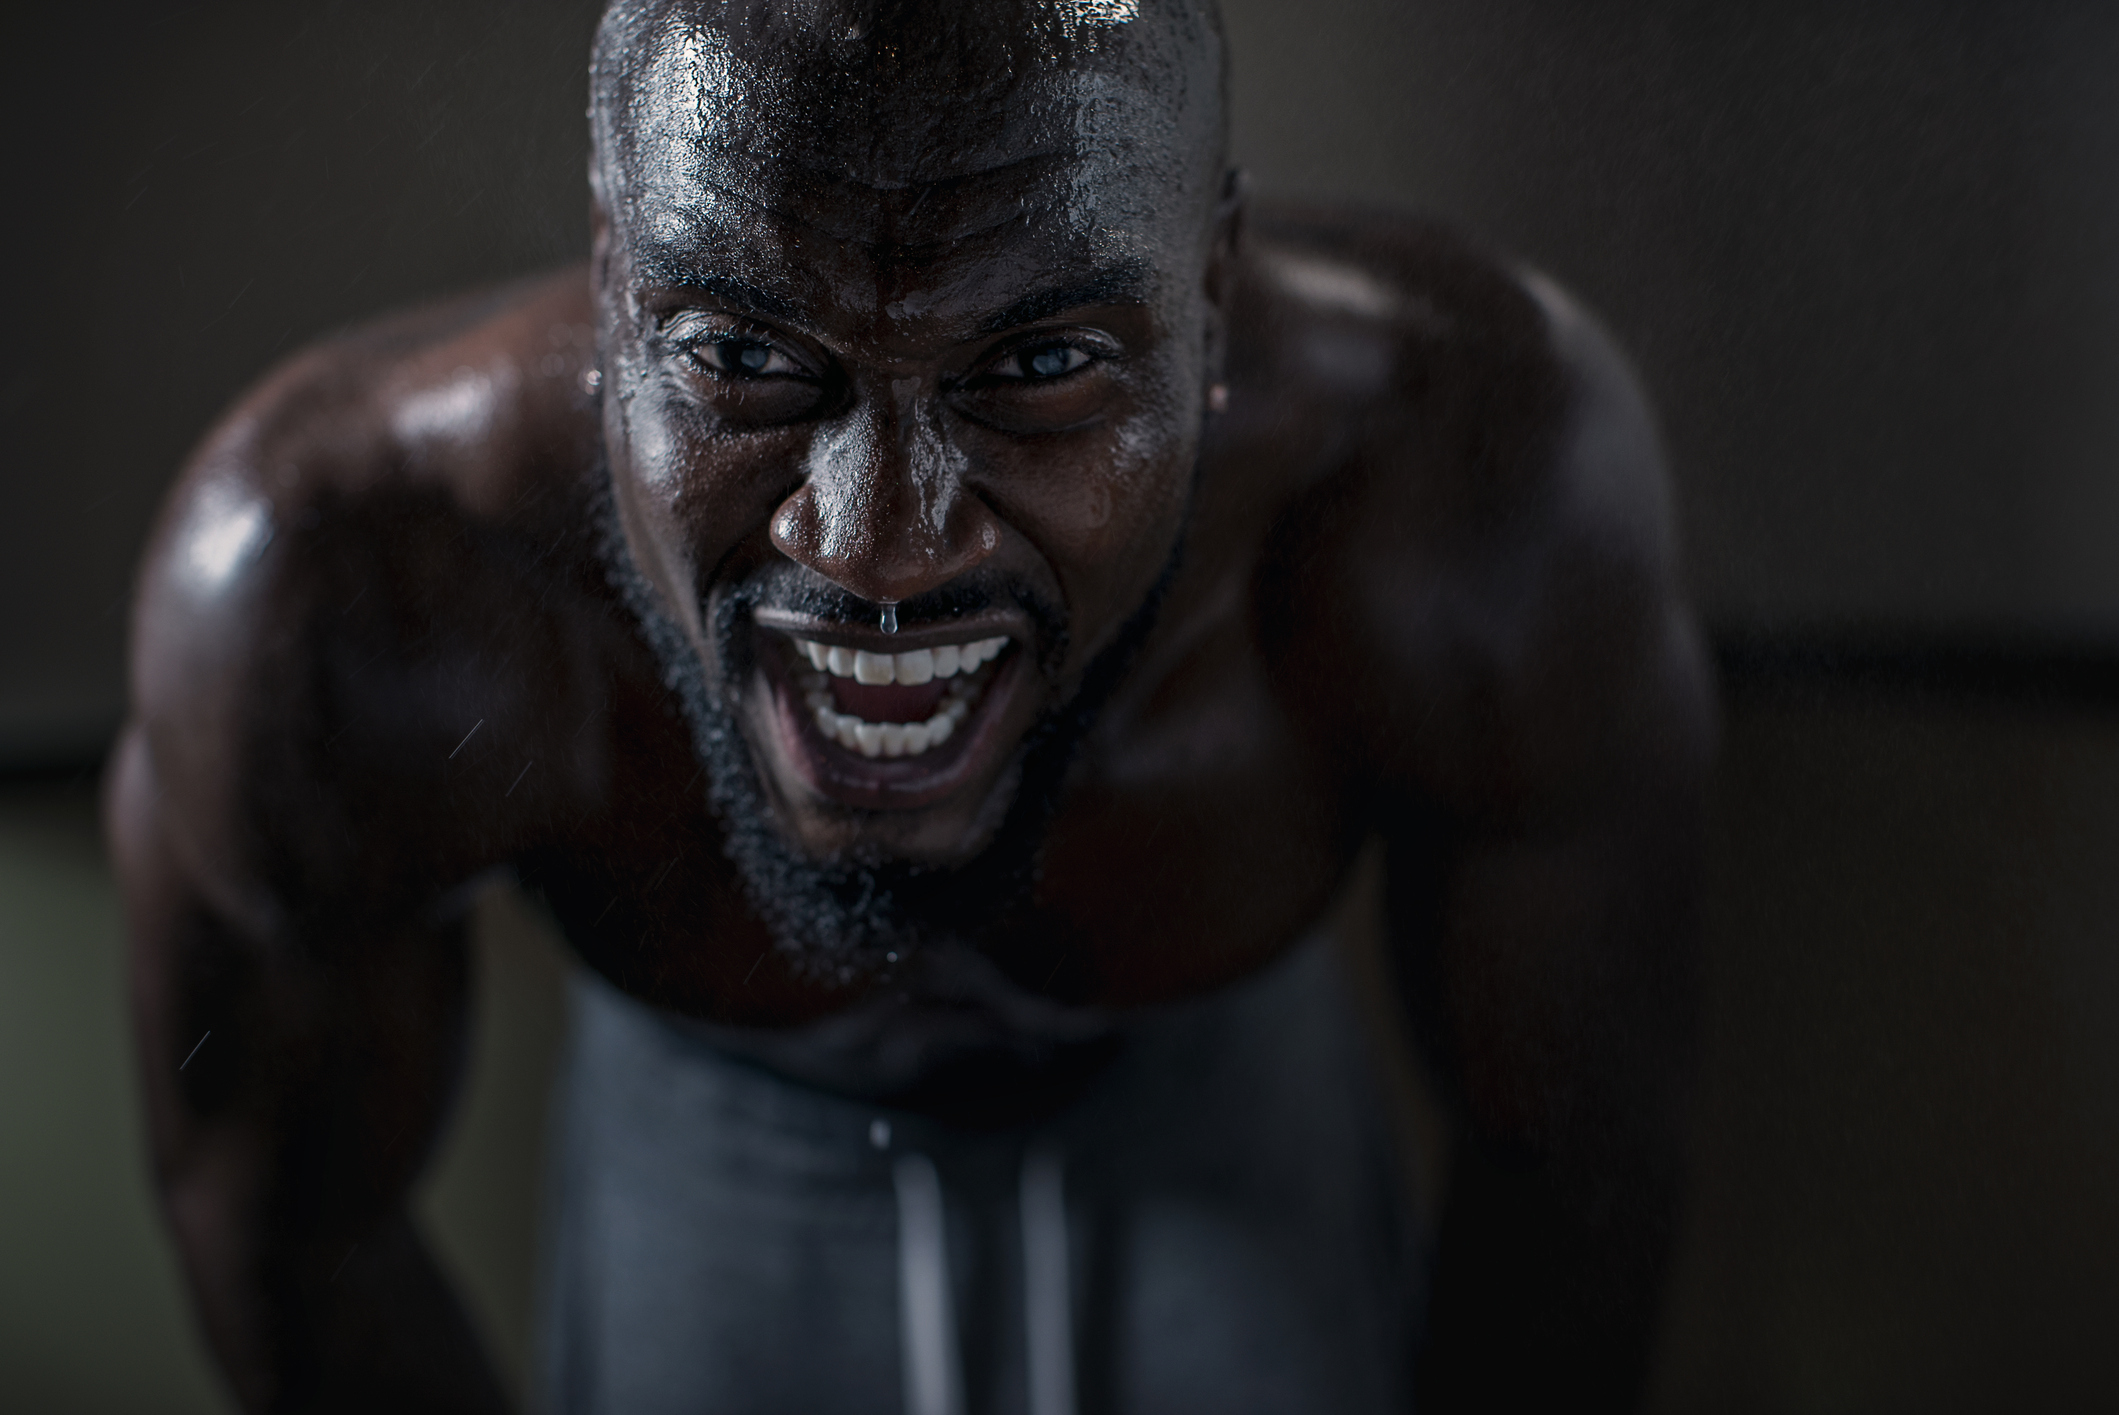 Generator Tough - This class is especially designed to make you tougher, stronger, and more functionally stable . This is a challenging class! You've been warned.